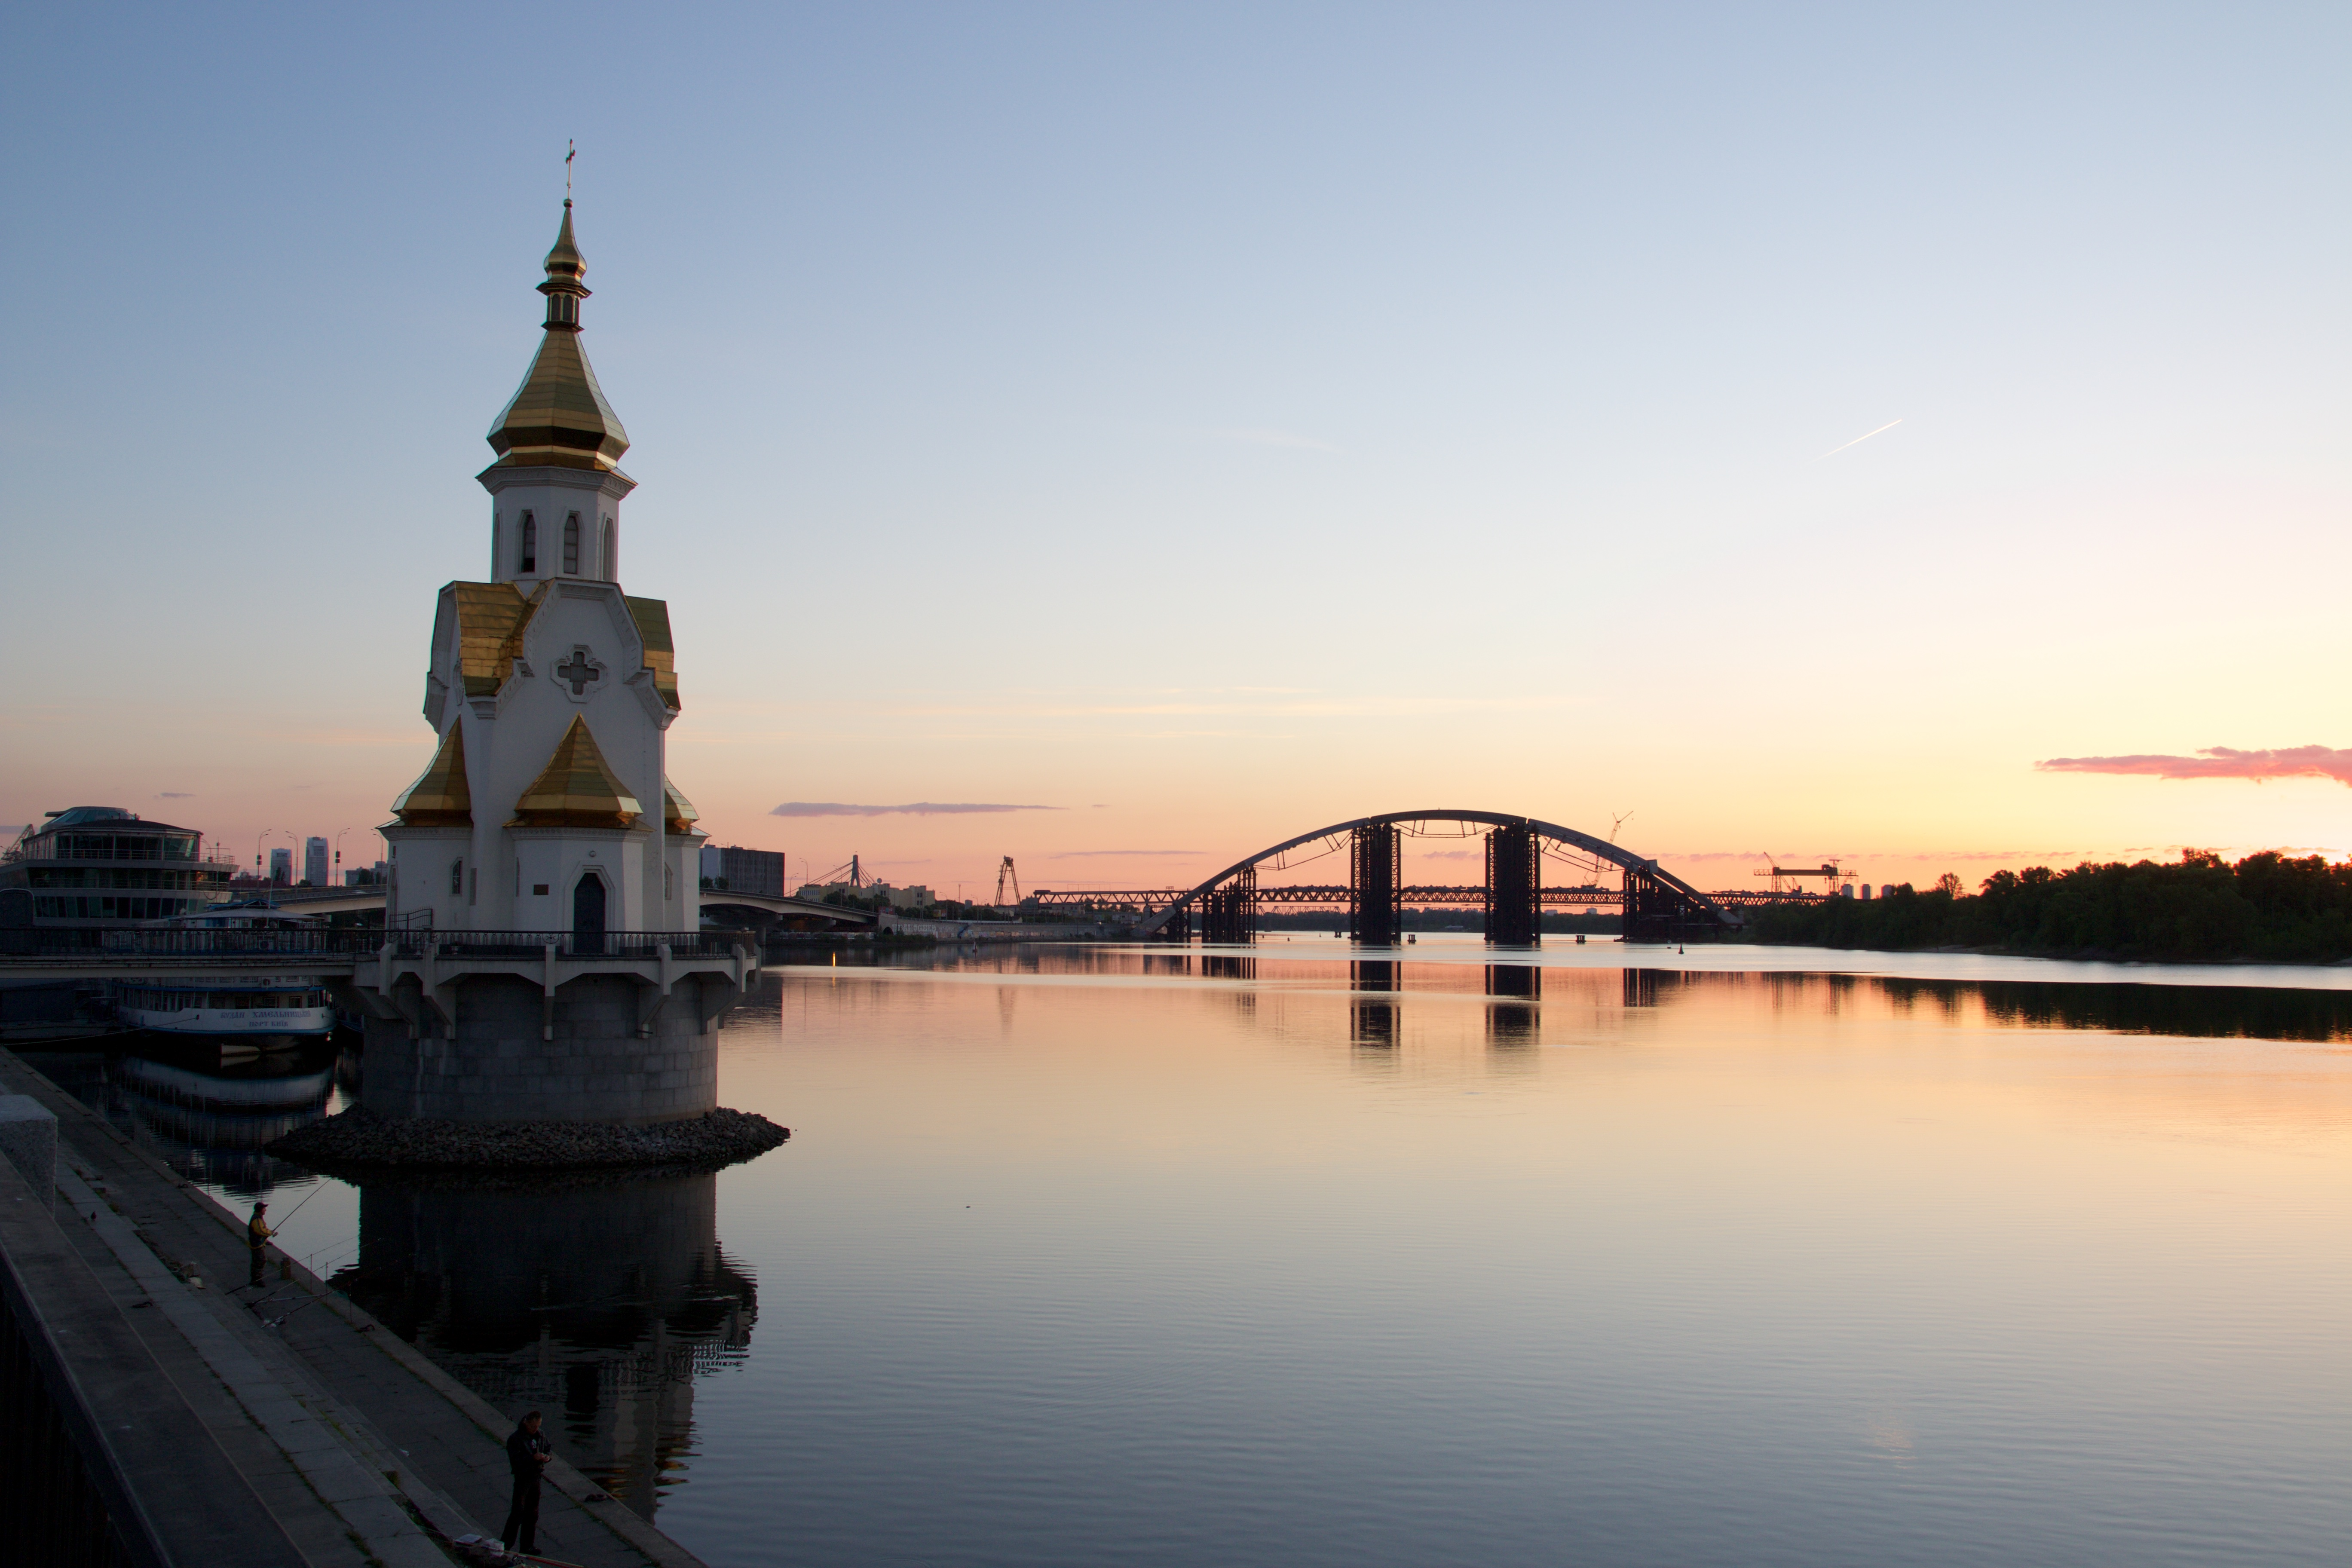 Dawn over the Dnipro